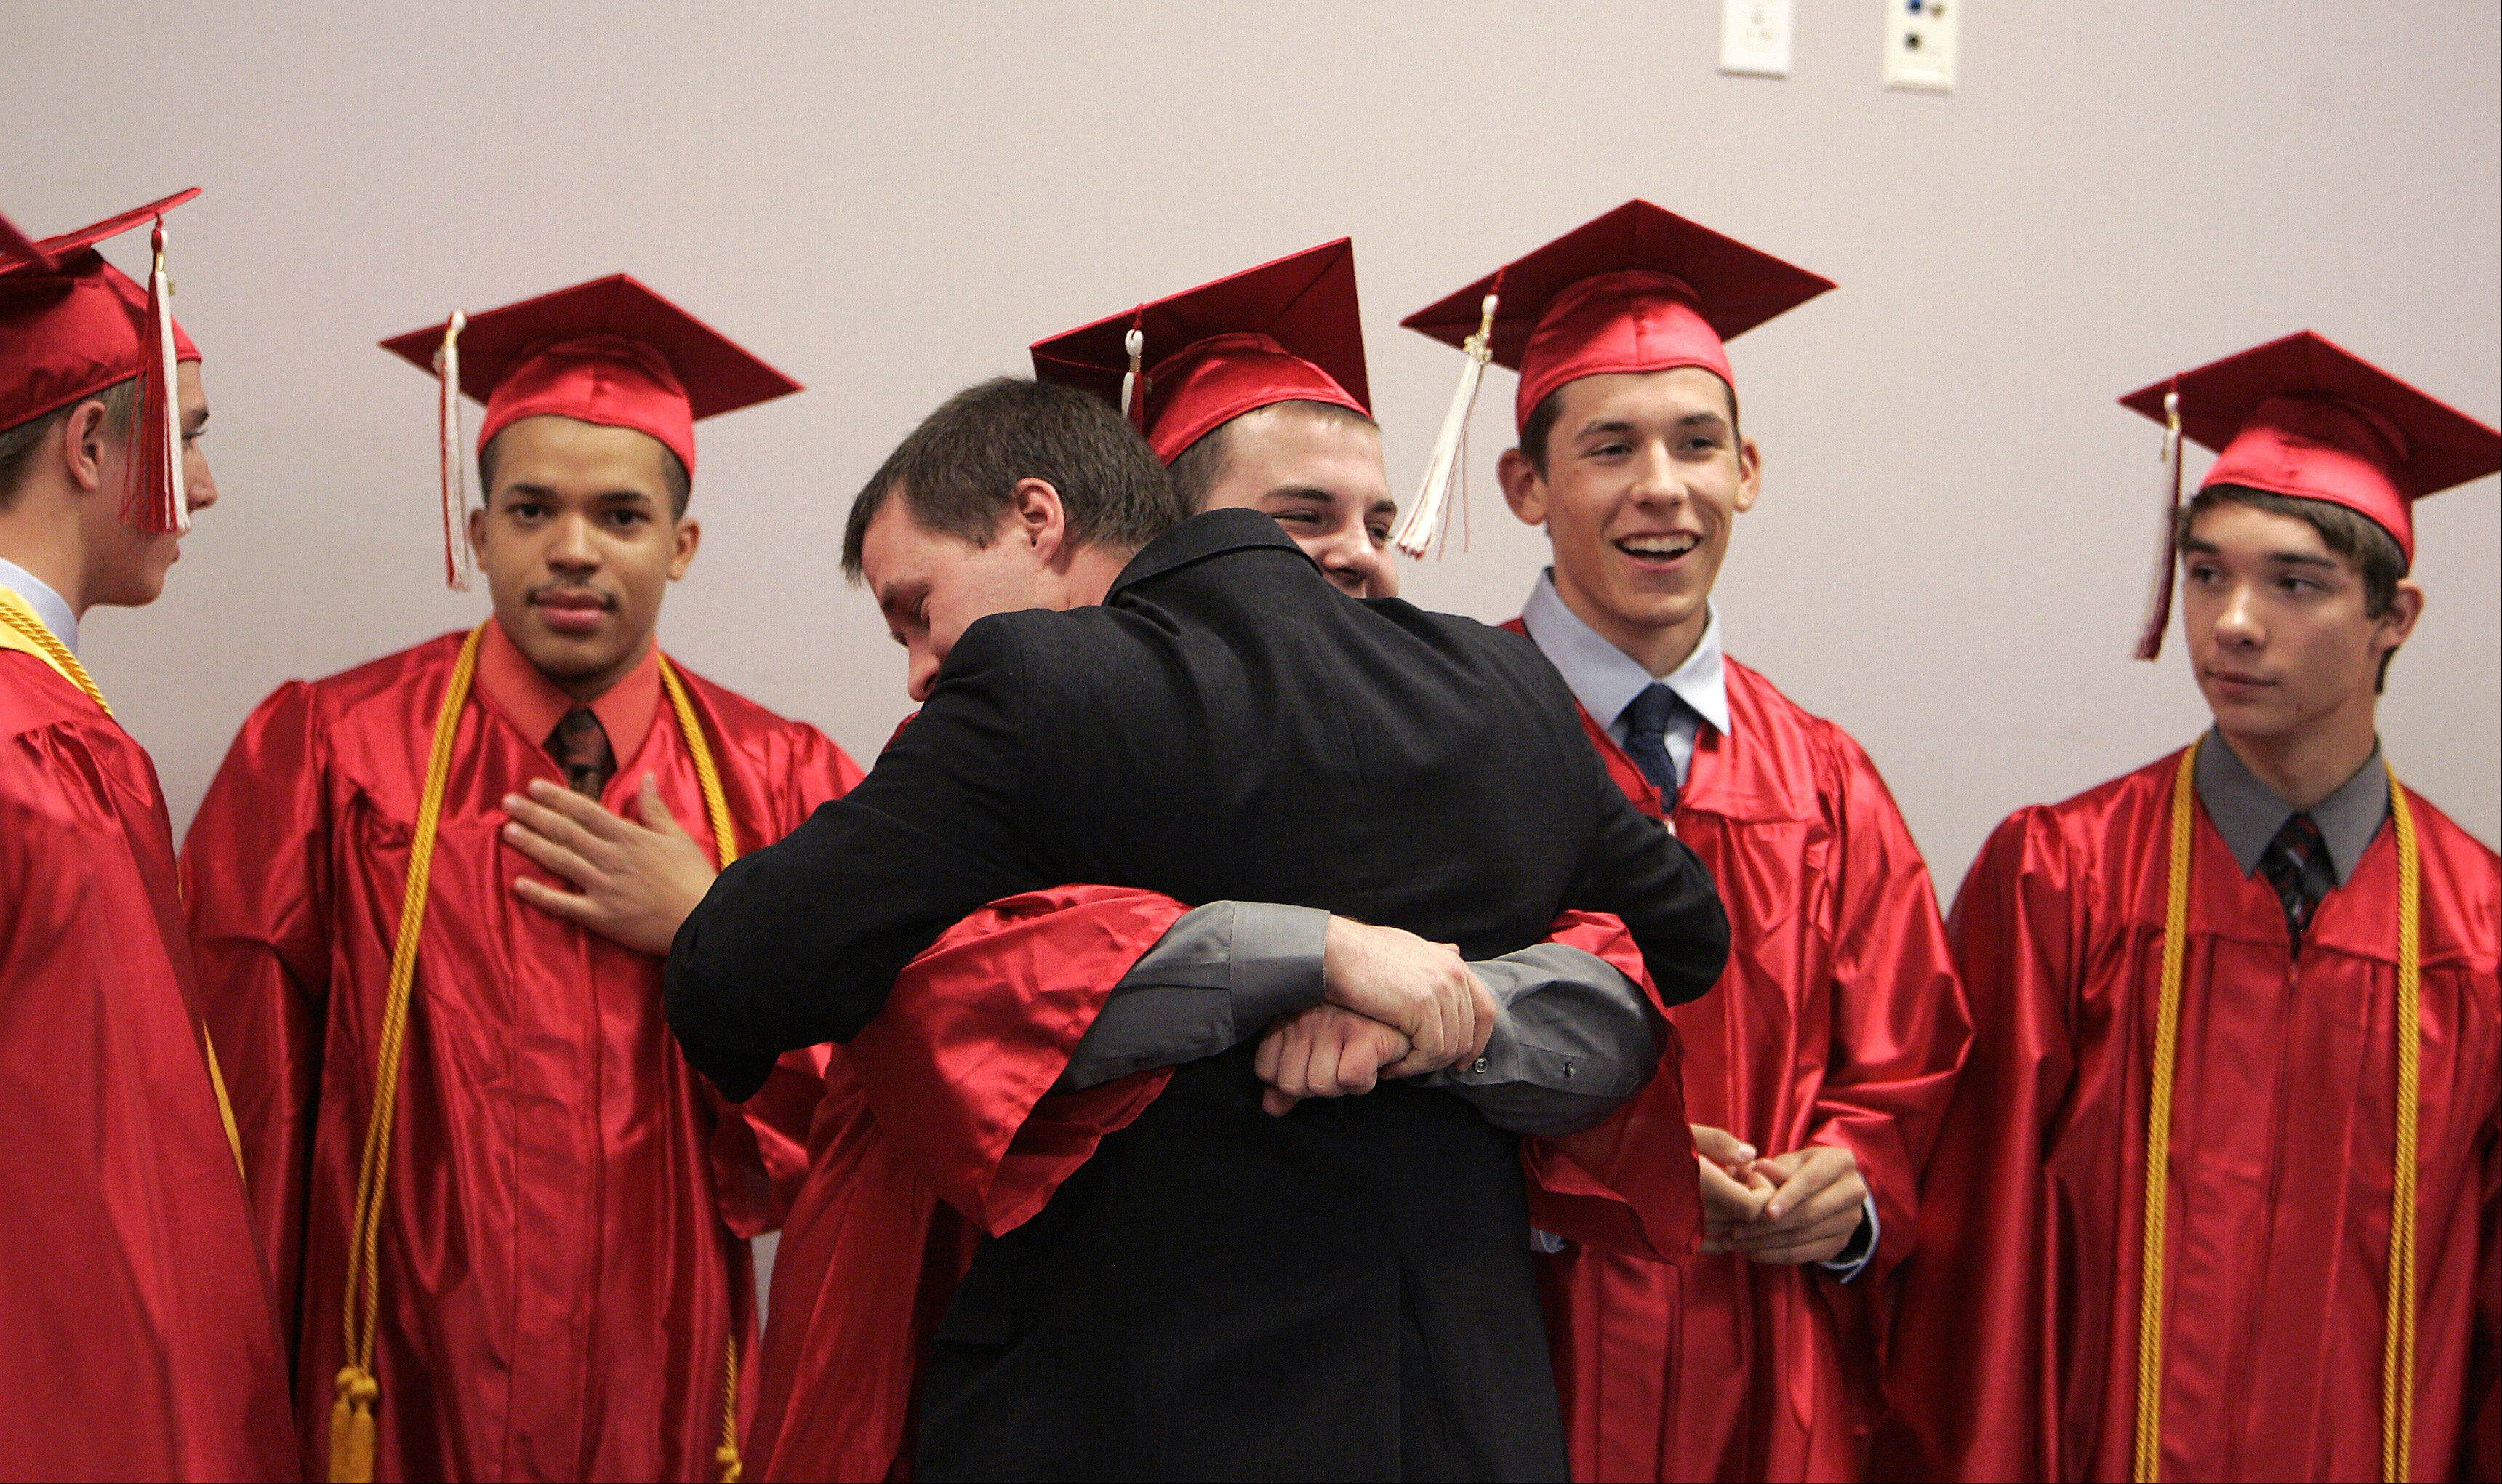 Aurora Christian Math teacher Bob Gorbold gets a giant bear hug from graduate Nick Larson as the students lined up for Aurora Christian's commencement ceremony Sunday, May 26, 2013 in Aurora.